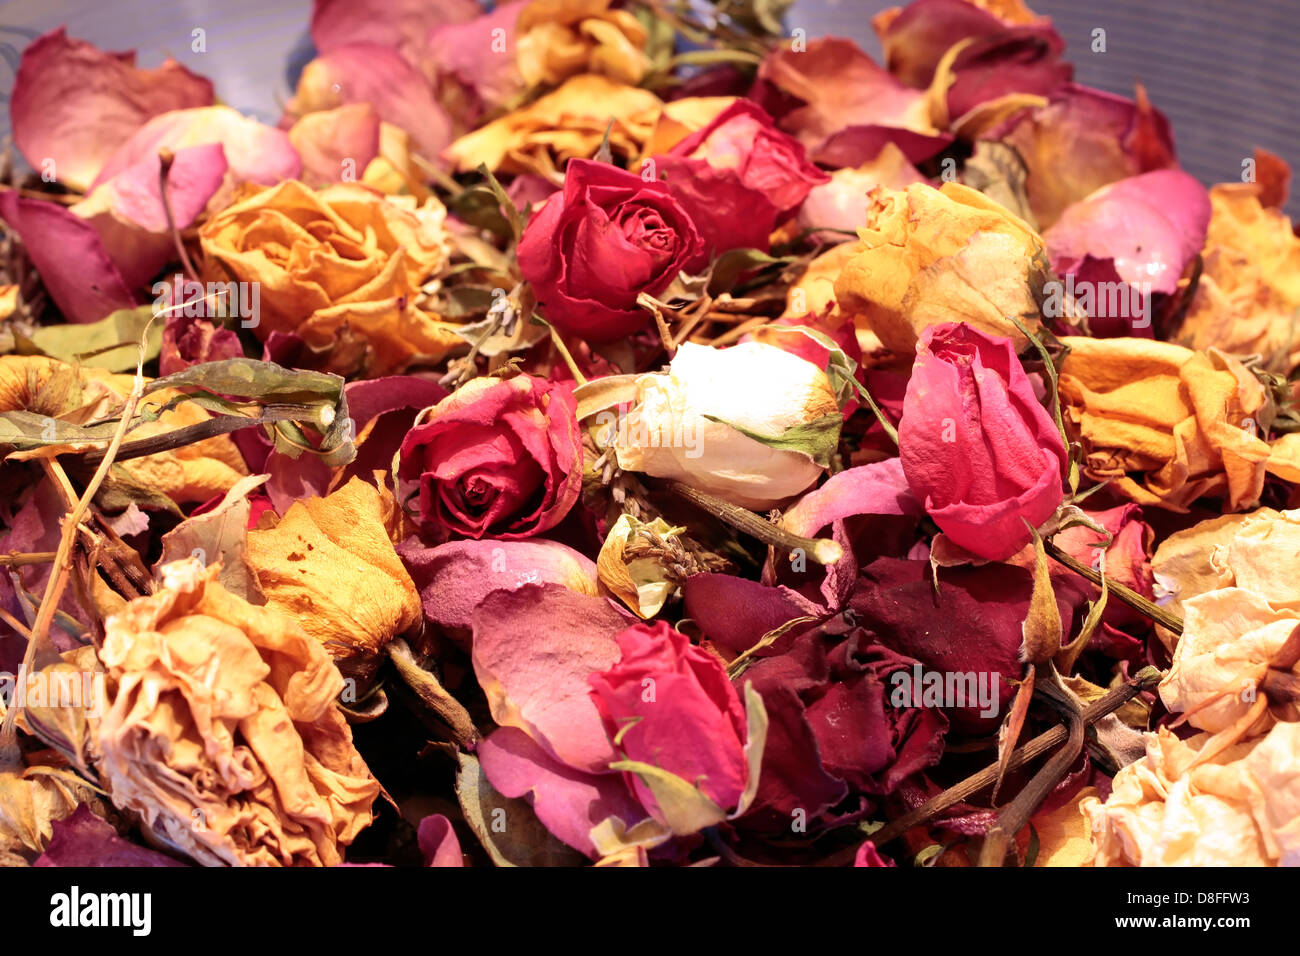 Close-up of a potpourri of colorful dried roses - Stock Image